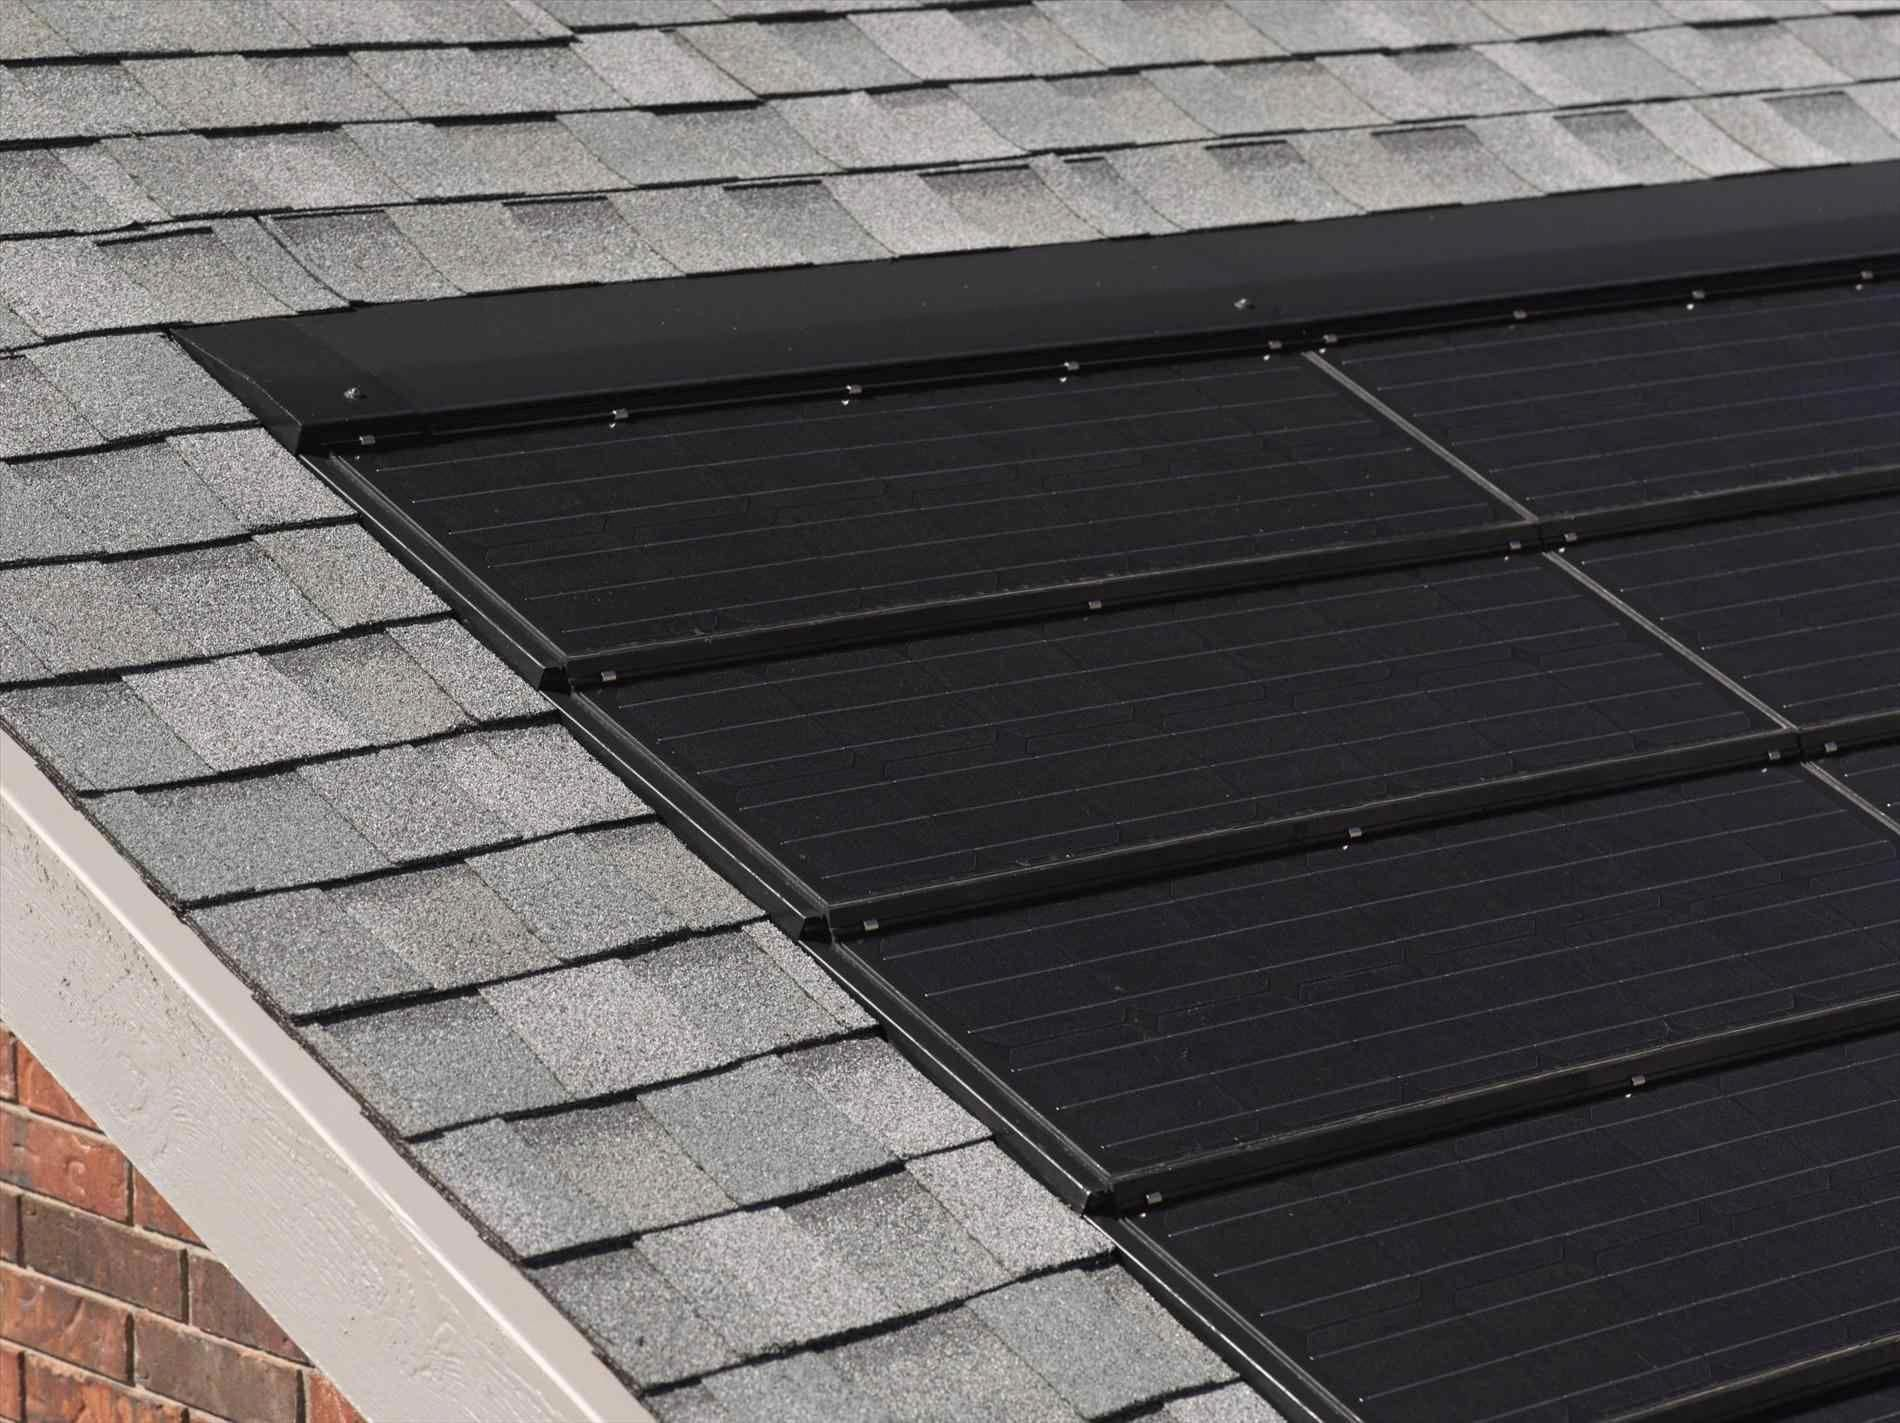 Solar Powered Roof Shingles Roof Integrated With Solar Panels Top Solar Energy Terms Defined Solarpoweredro Solar Panels Solar Roof Tiles Best Solar Panels